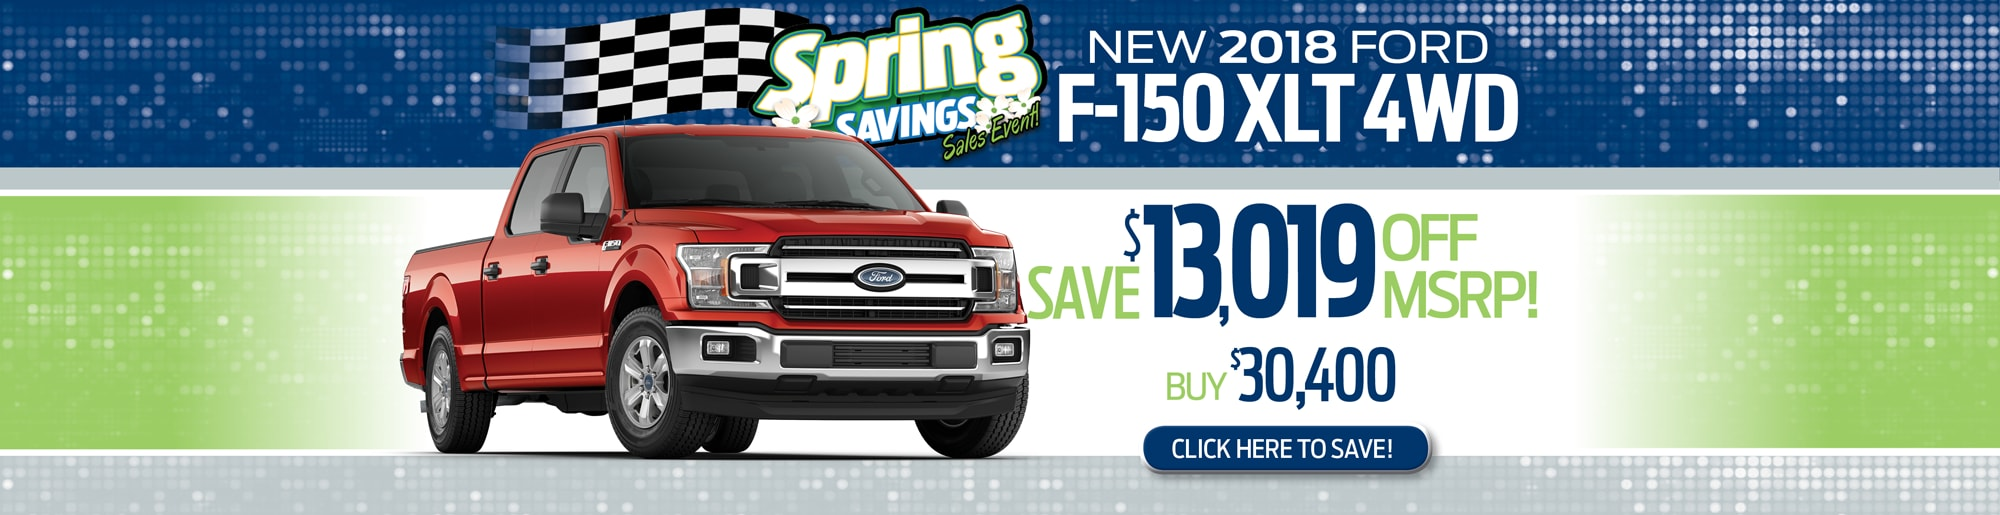 Used Car Dealerships Knoxville Tn >> New Ford & Used Car Dealer & Ford Service in Knoxville, TN - Lance Cunningham Ford